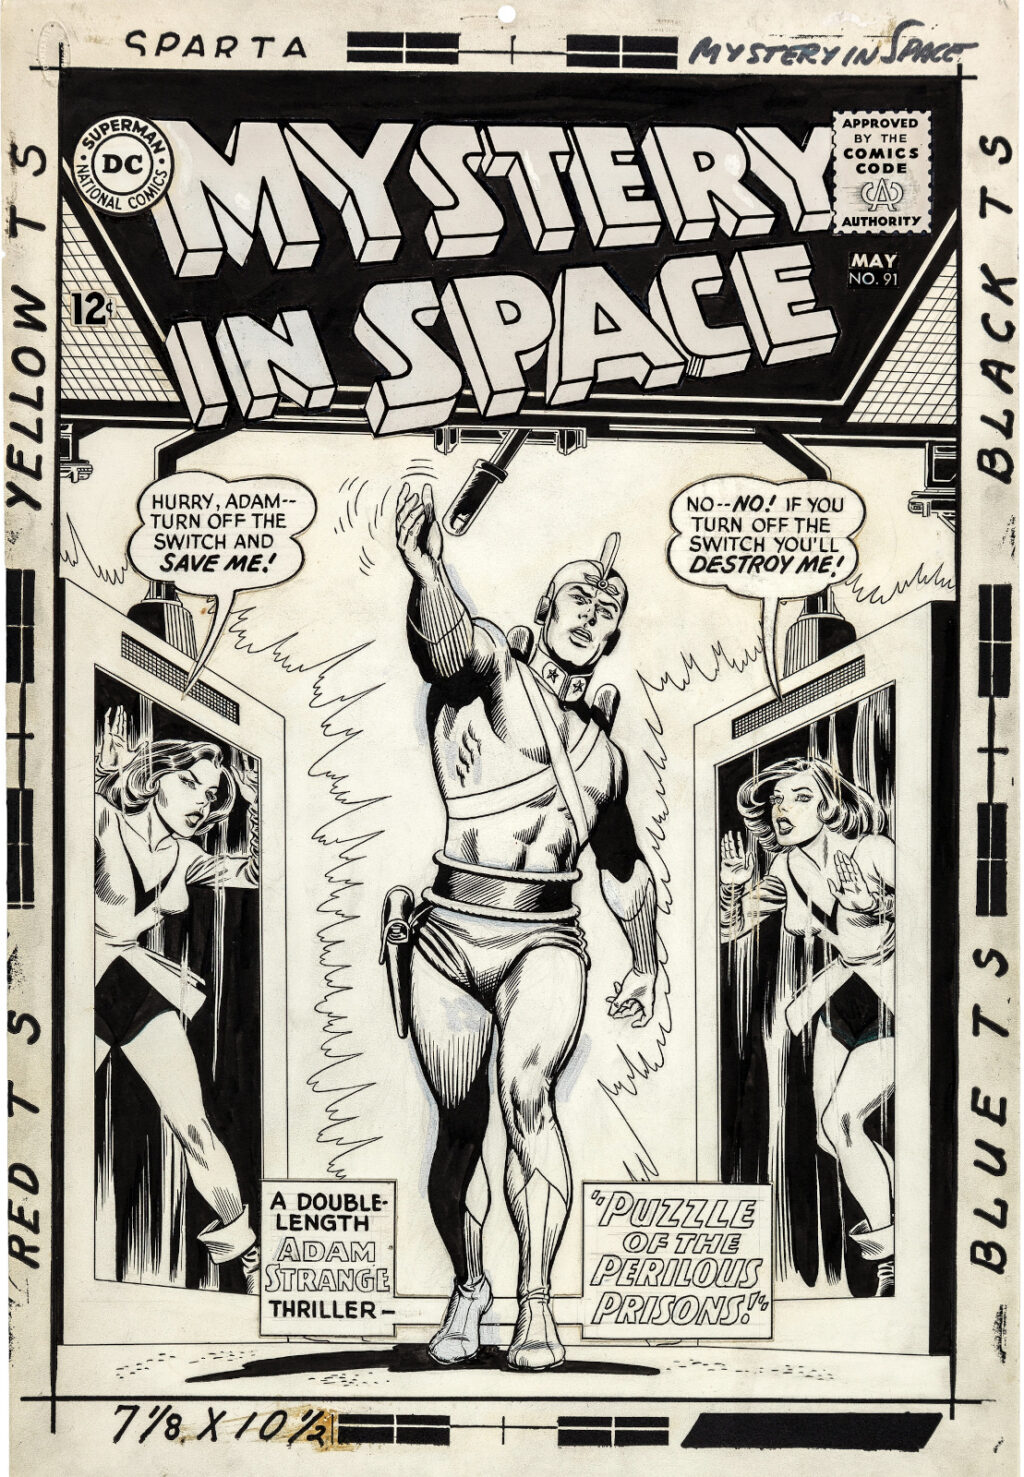 Mystery In Space issue 91 by Carmine Infantino and Murphy Anderson